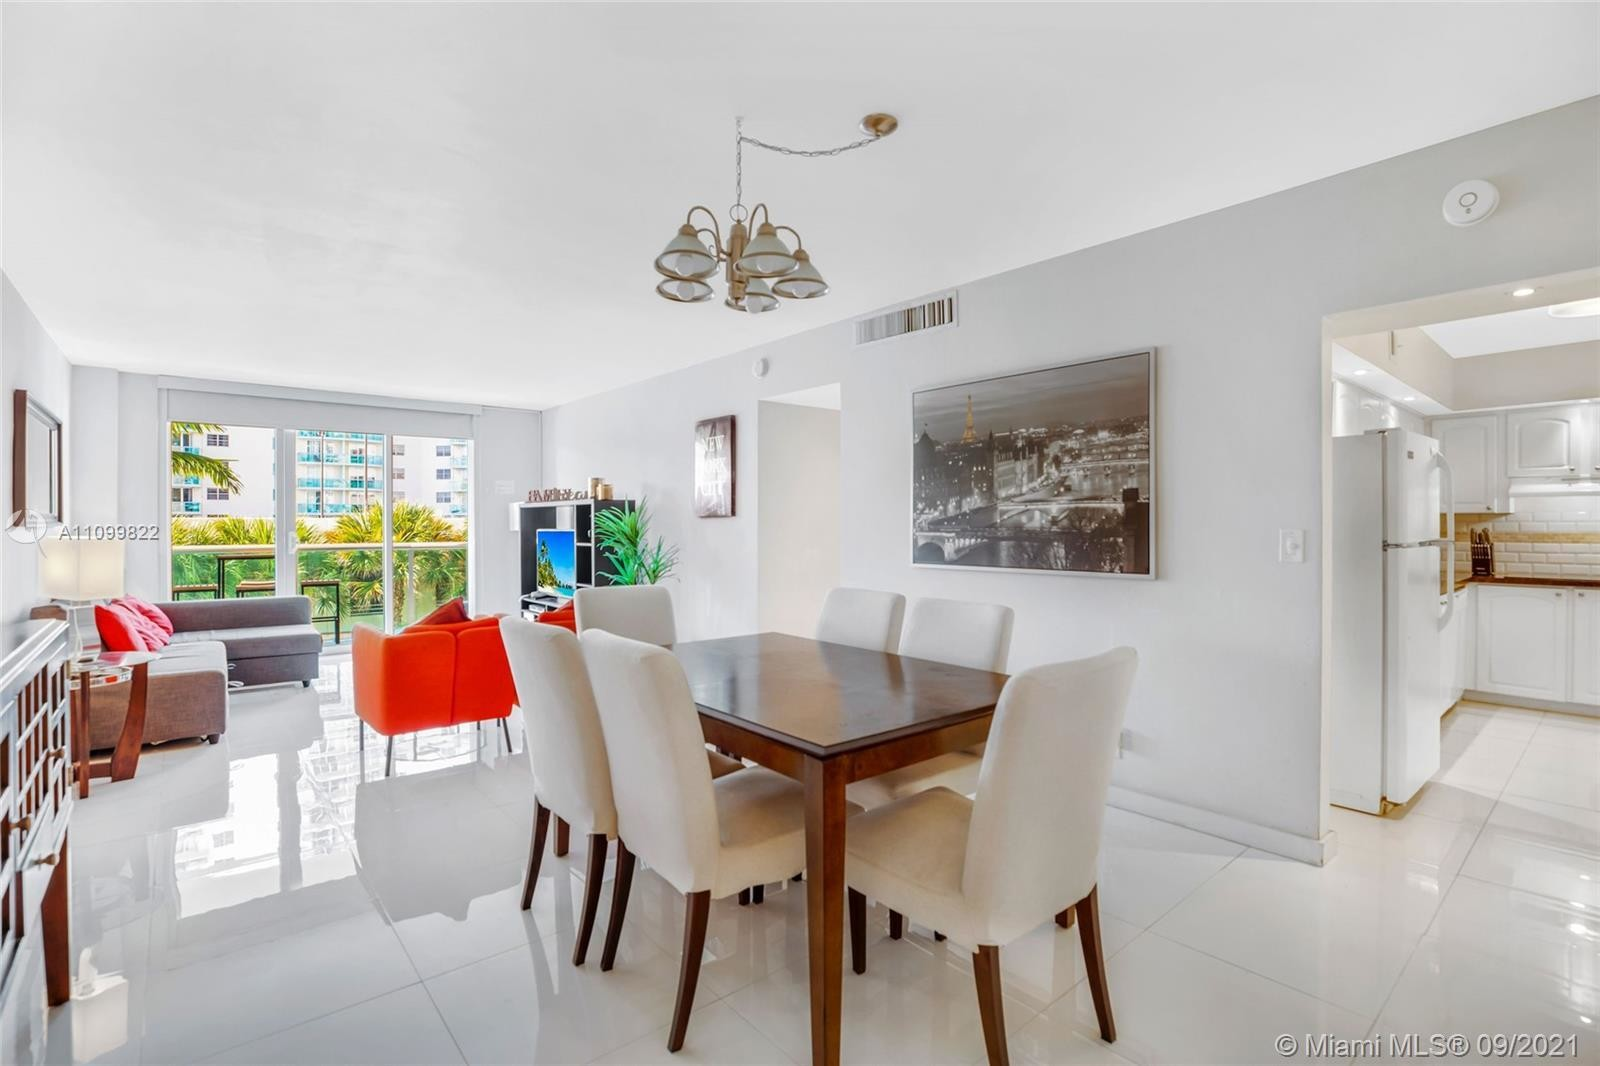 Remodeled 1-Bedroom Condo In South Central Beach